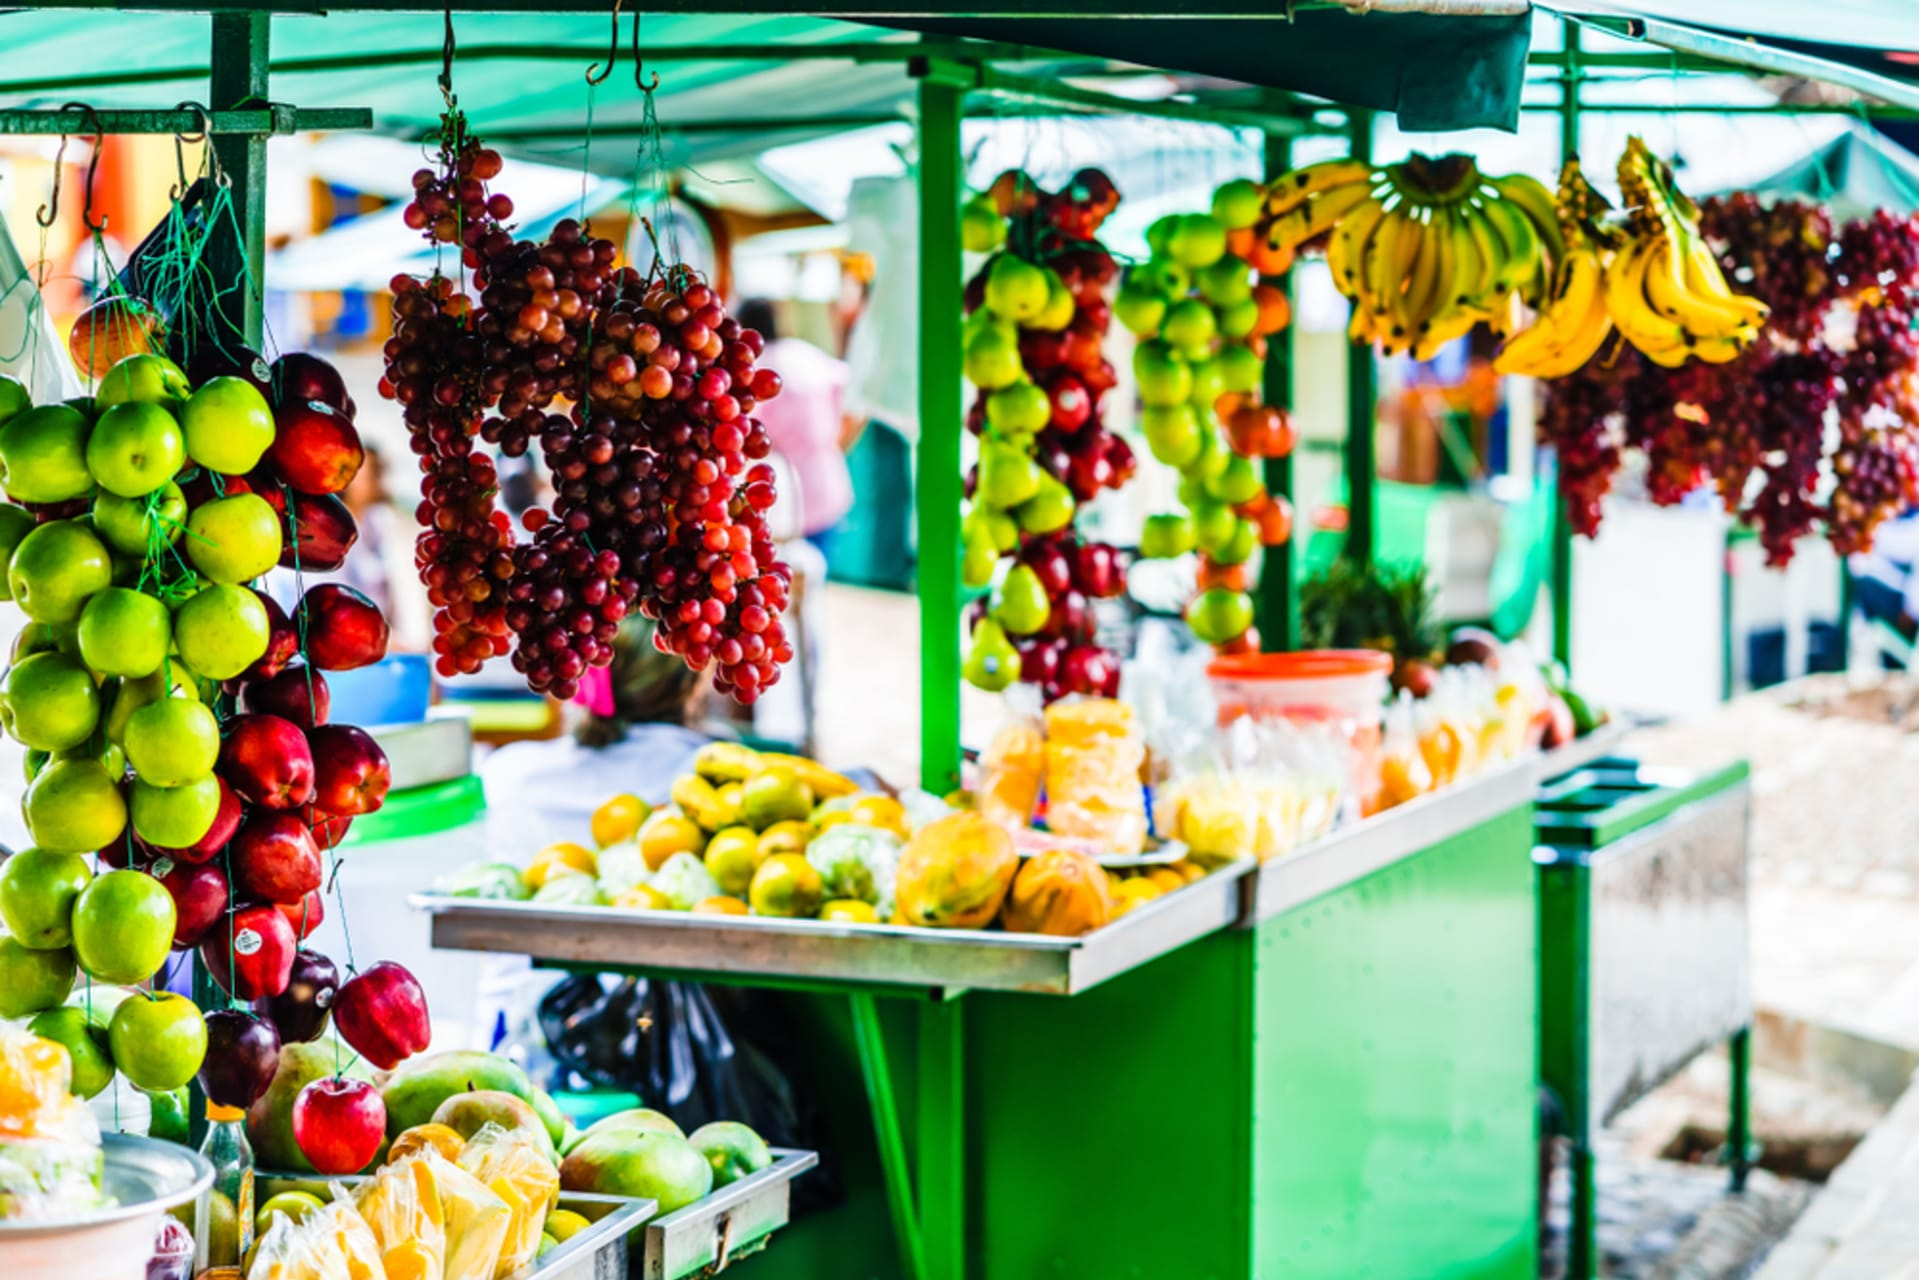 Bogota - Flowers, Fruits and Herbs: Paloquemao Market in Colombia